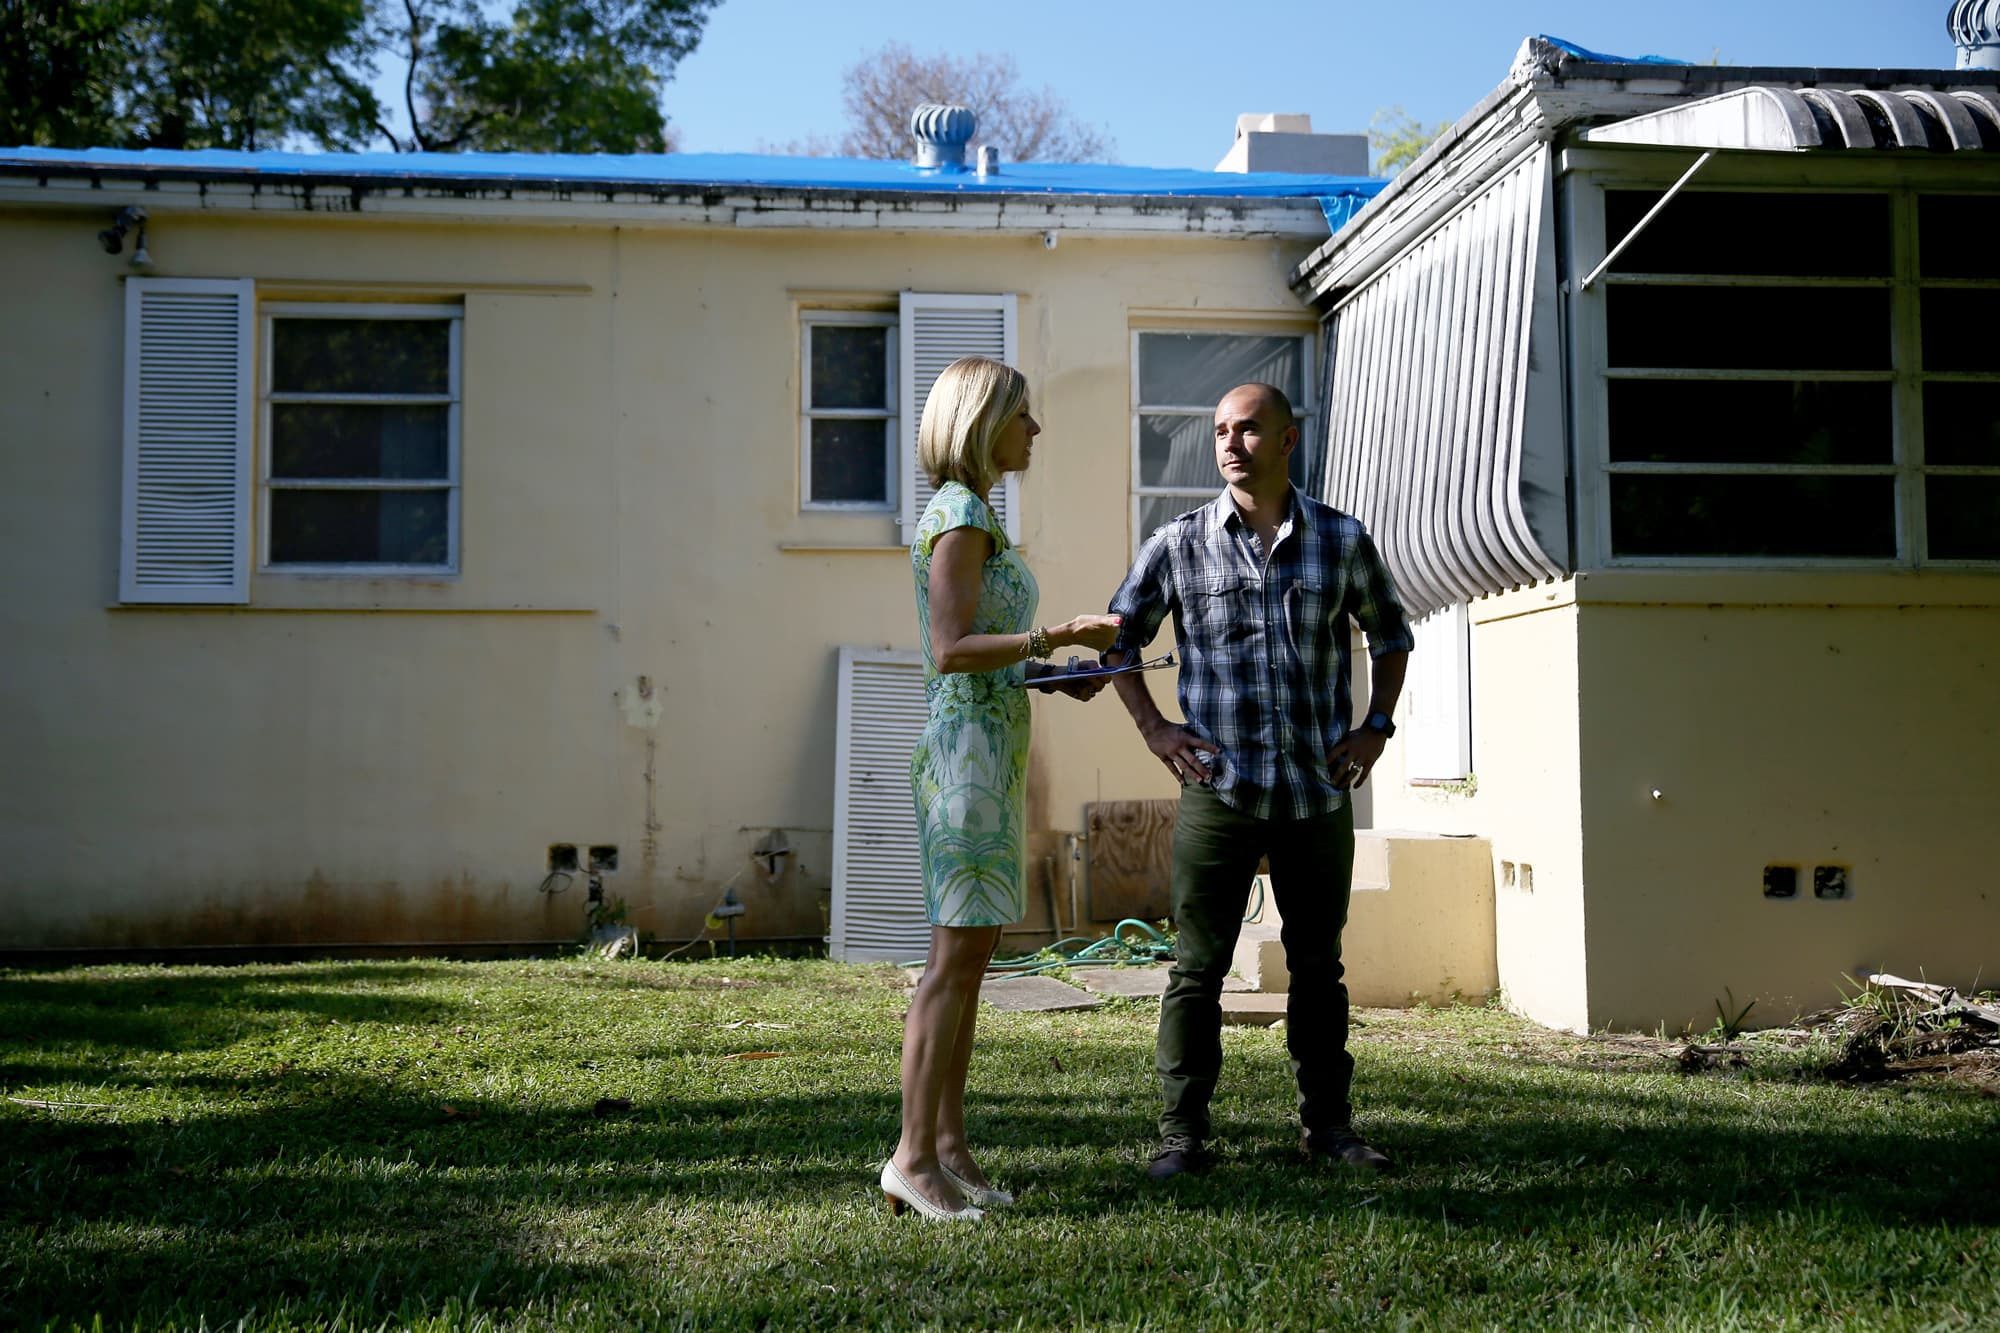 Homebuyers aren't taking climate change seriously, says Redfin CEO